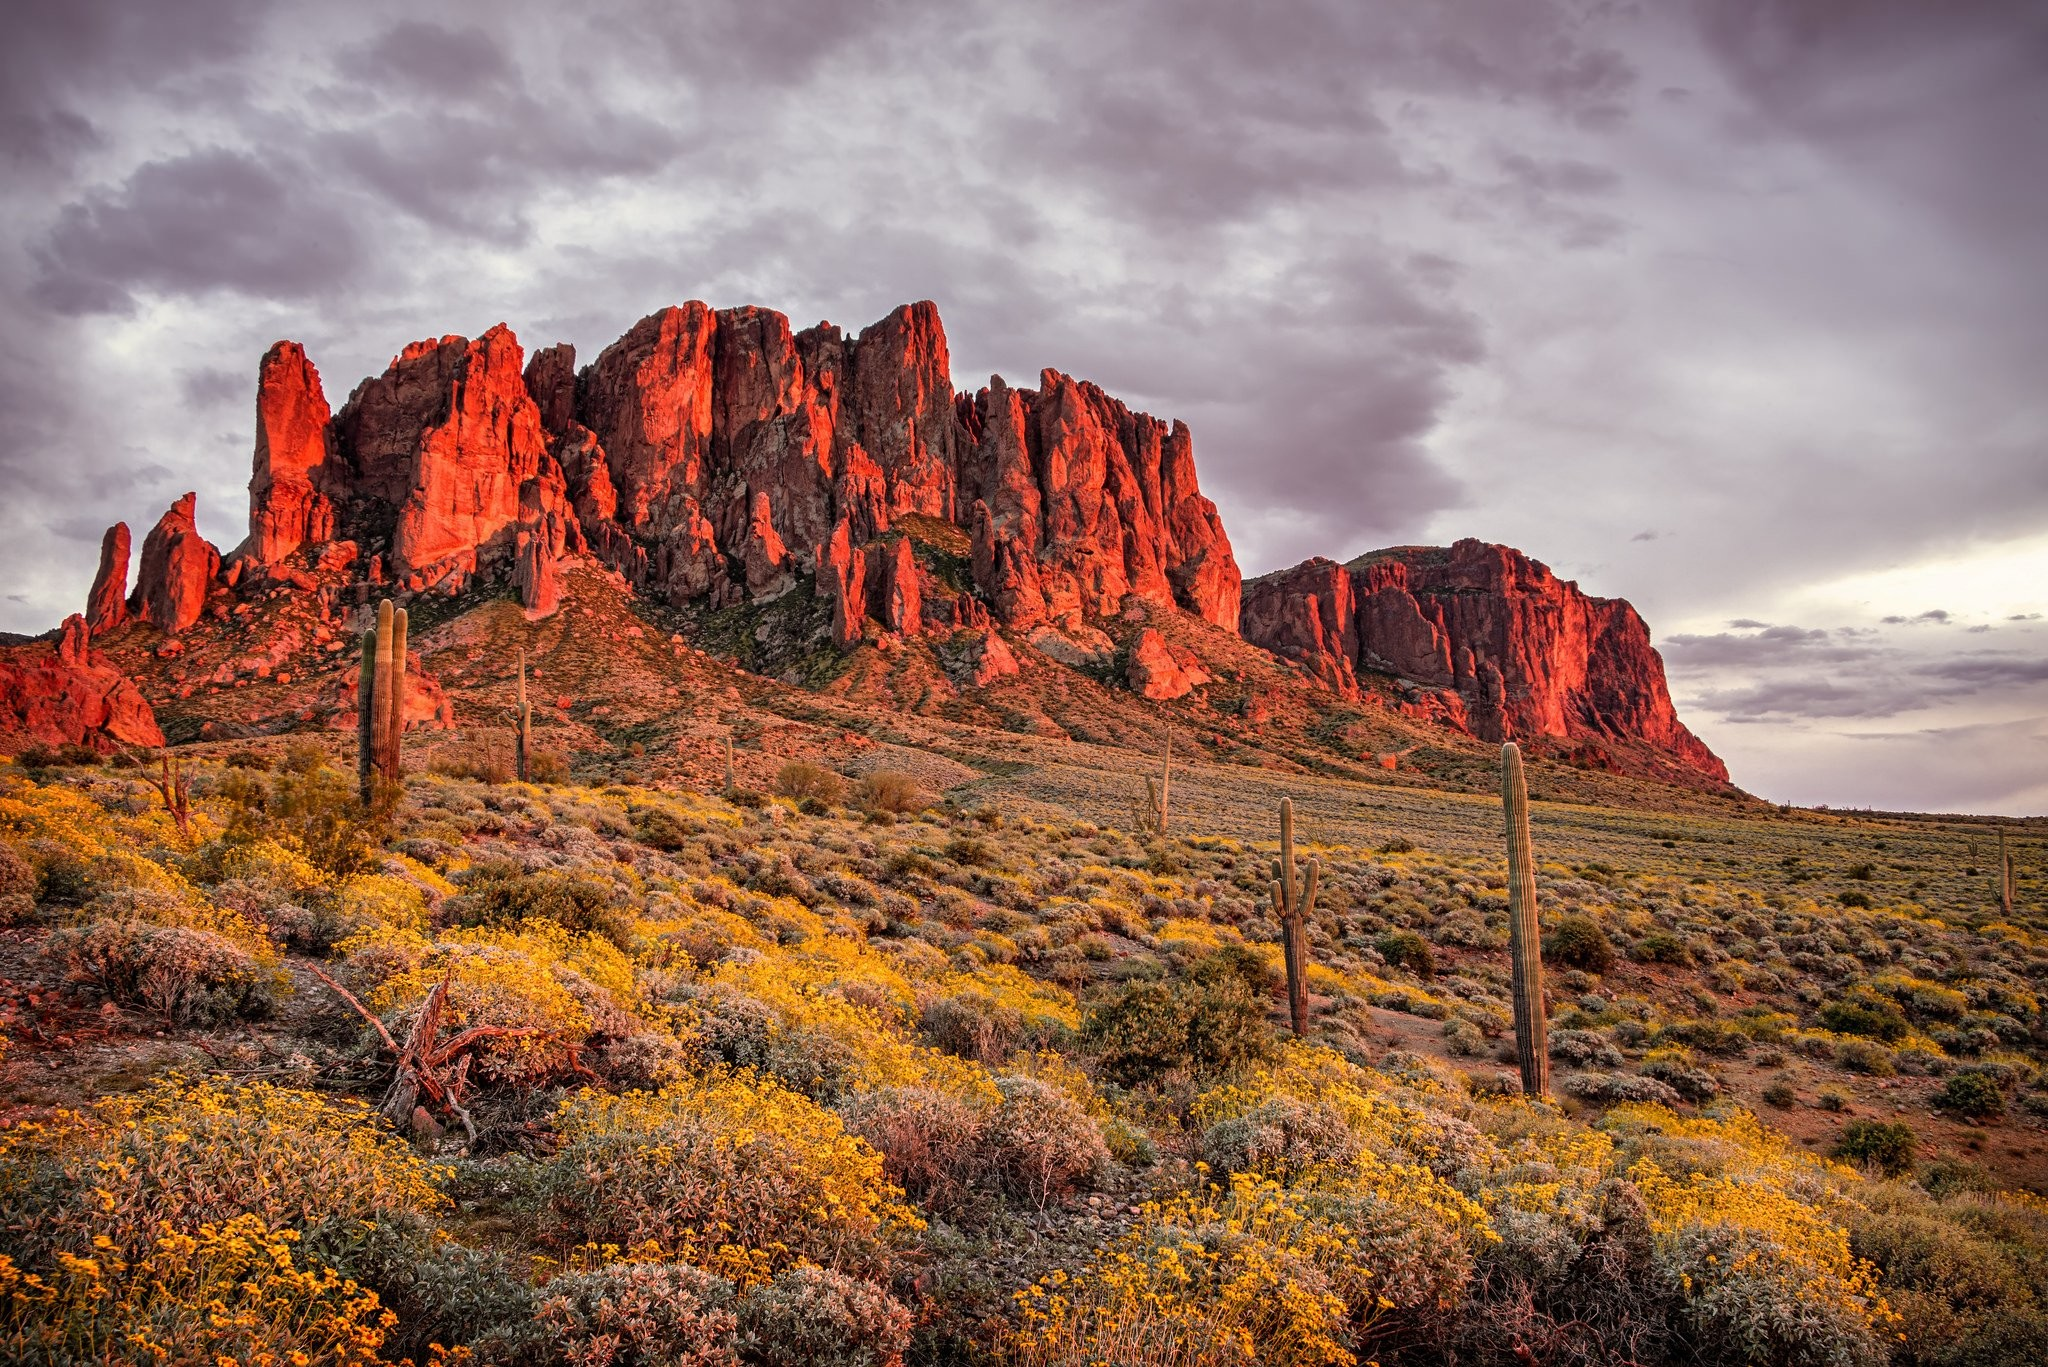 Mountains desert flowers cactus Apache Junction State of Arizona  Superstition Mountains wallpaper     647743   WallpaperUP